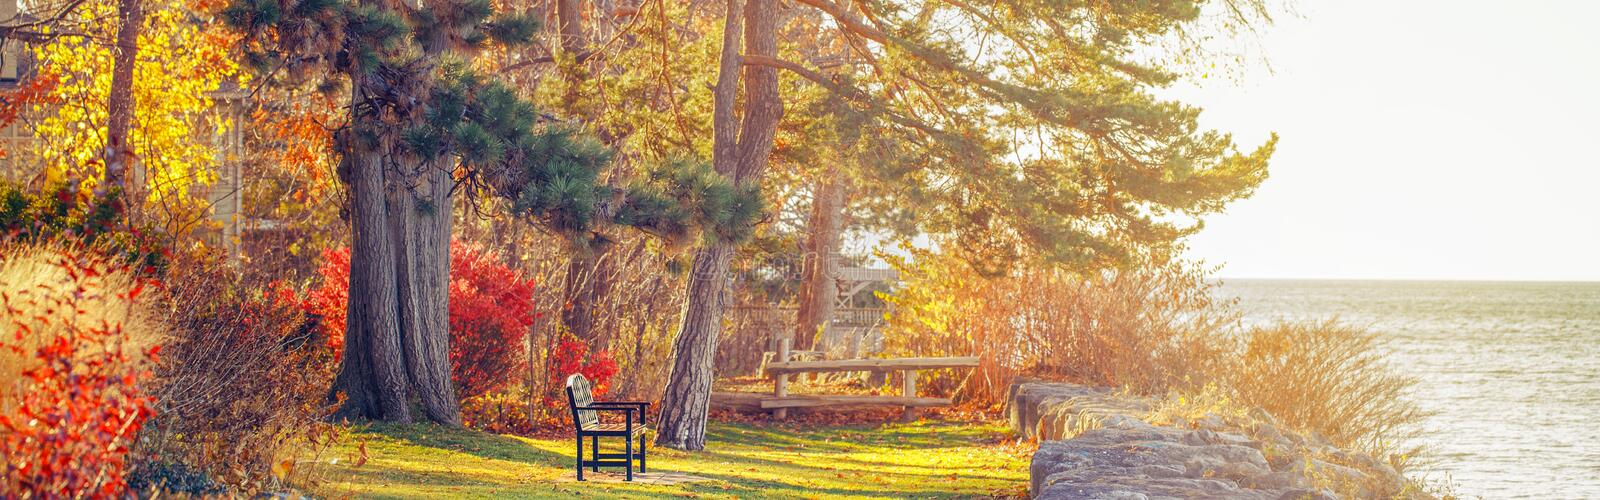 Park with one lonely old bench on bank shore near water lake. Web header banner for website royalty free stock photo